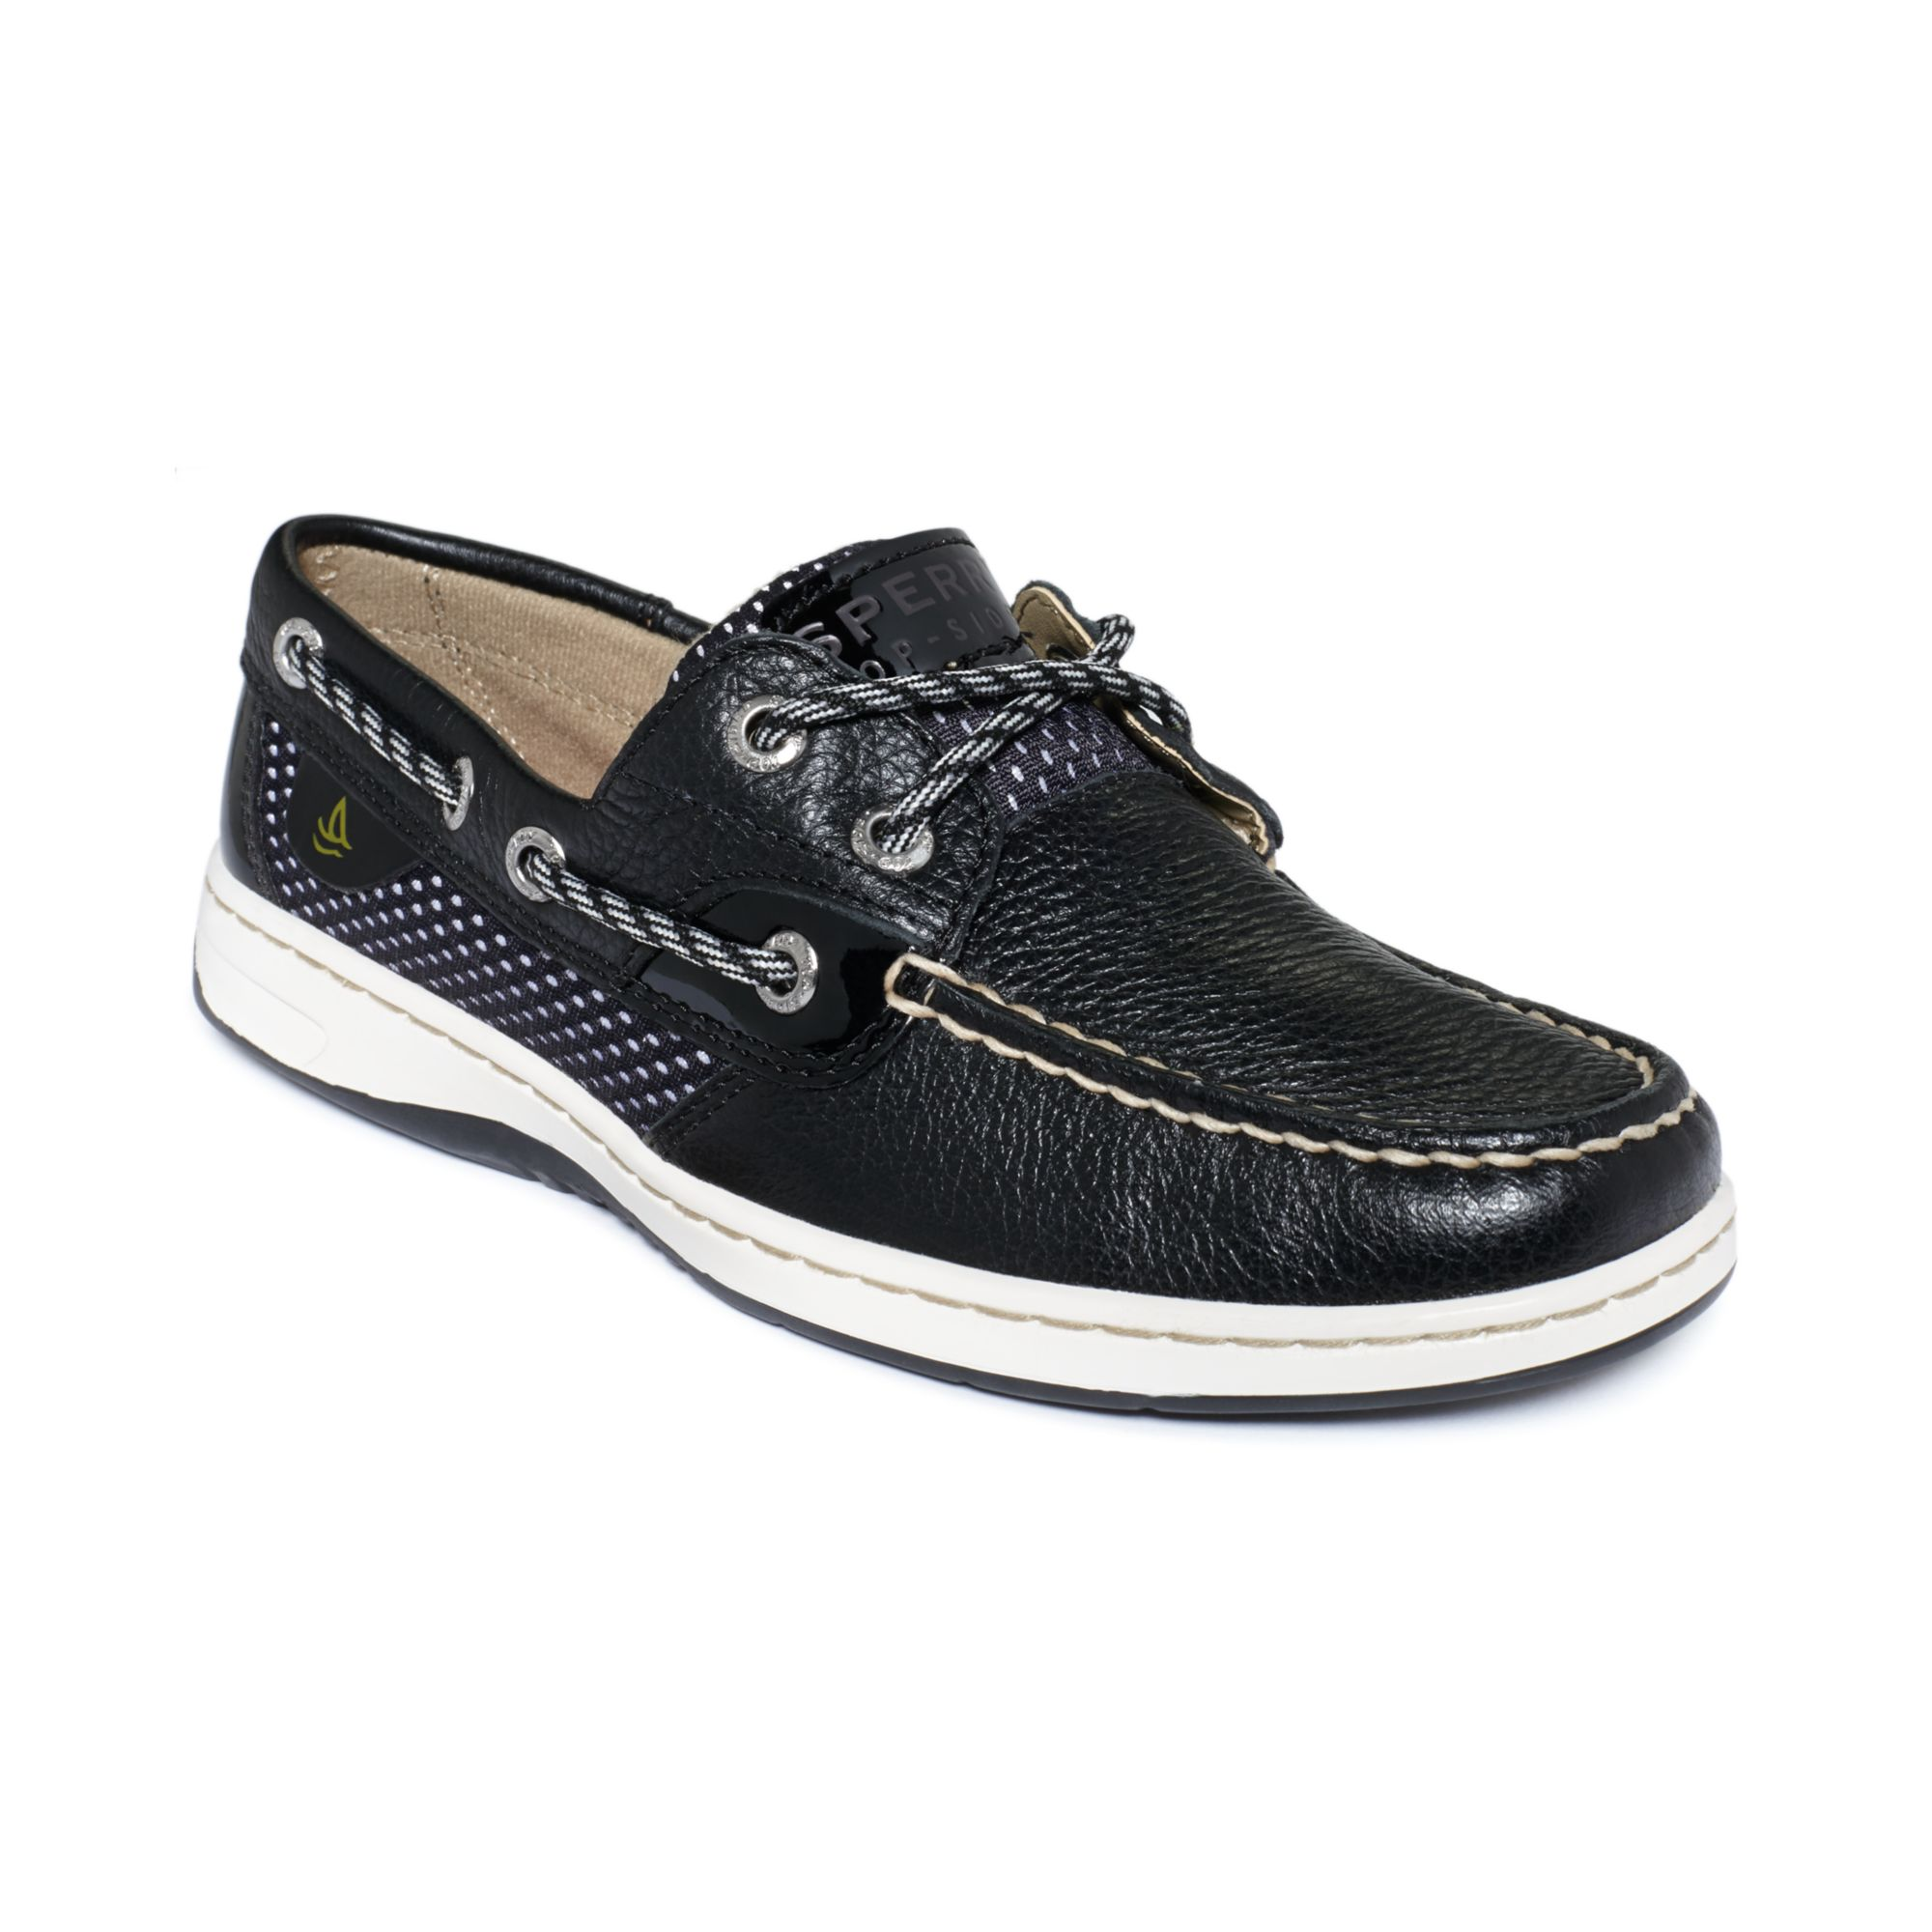 Sperry Top-sider Sperry Women S Bluefish Boat Shoes in Black (Black